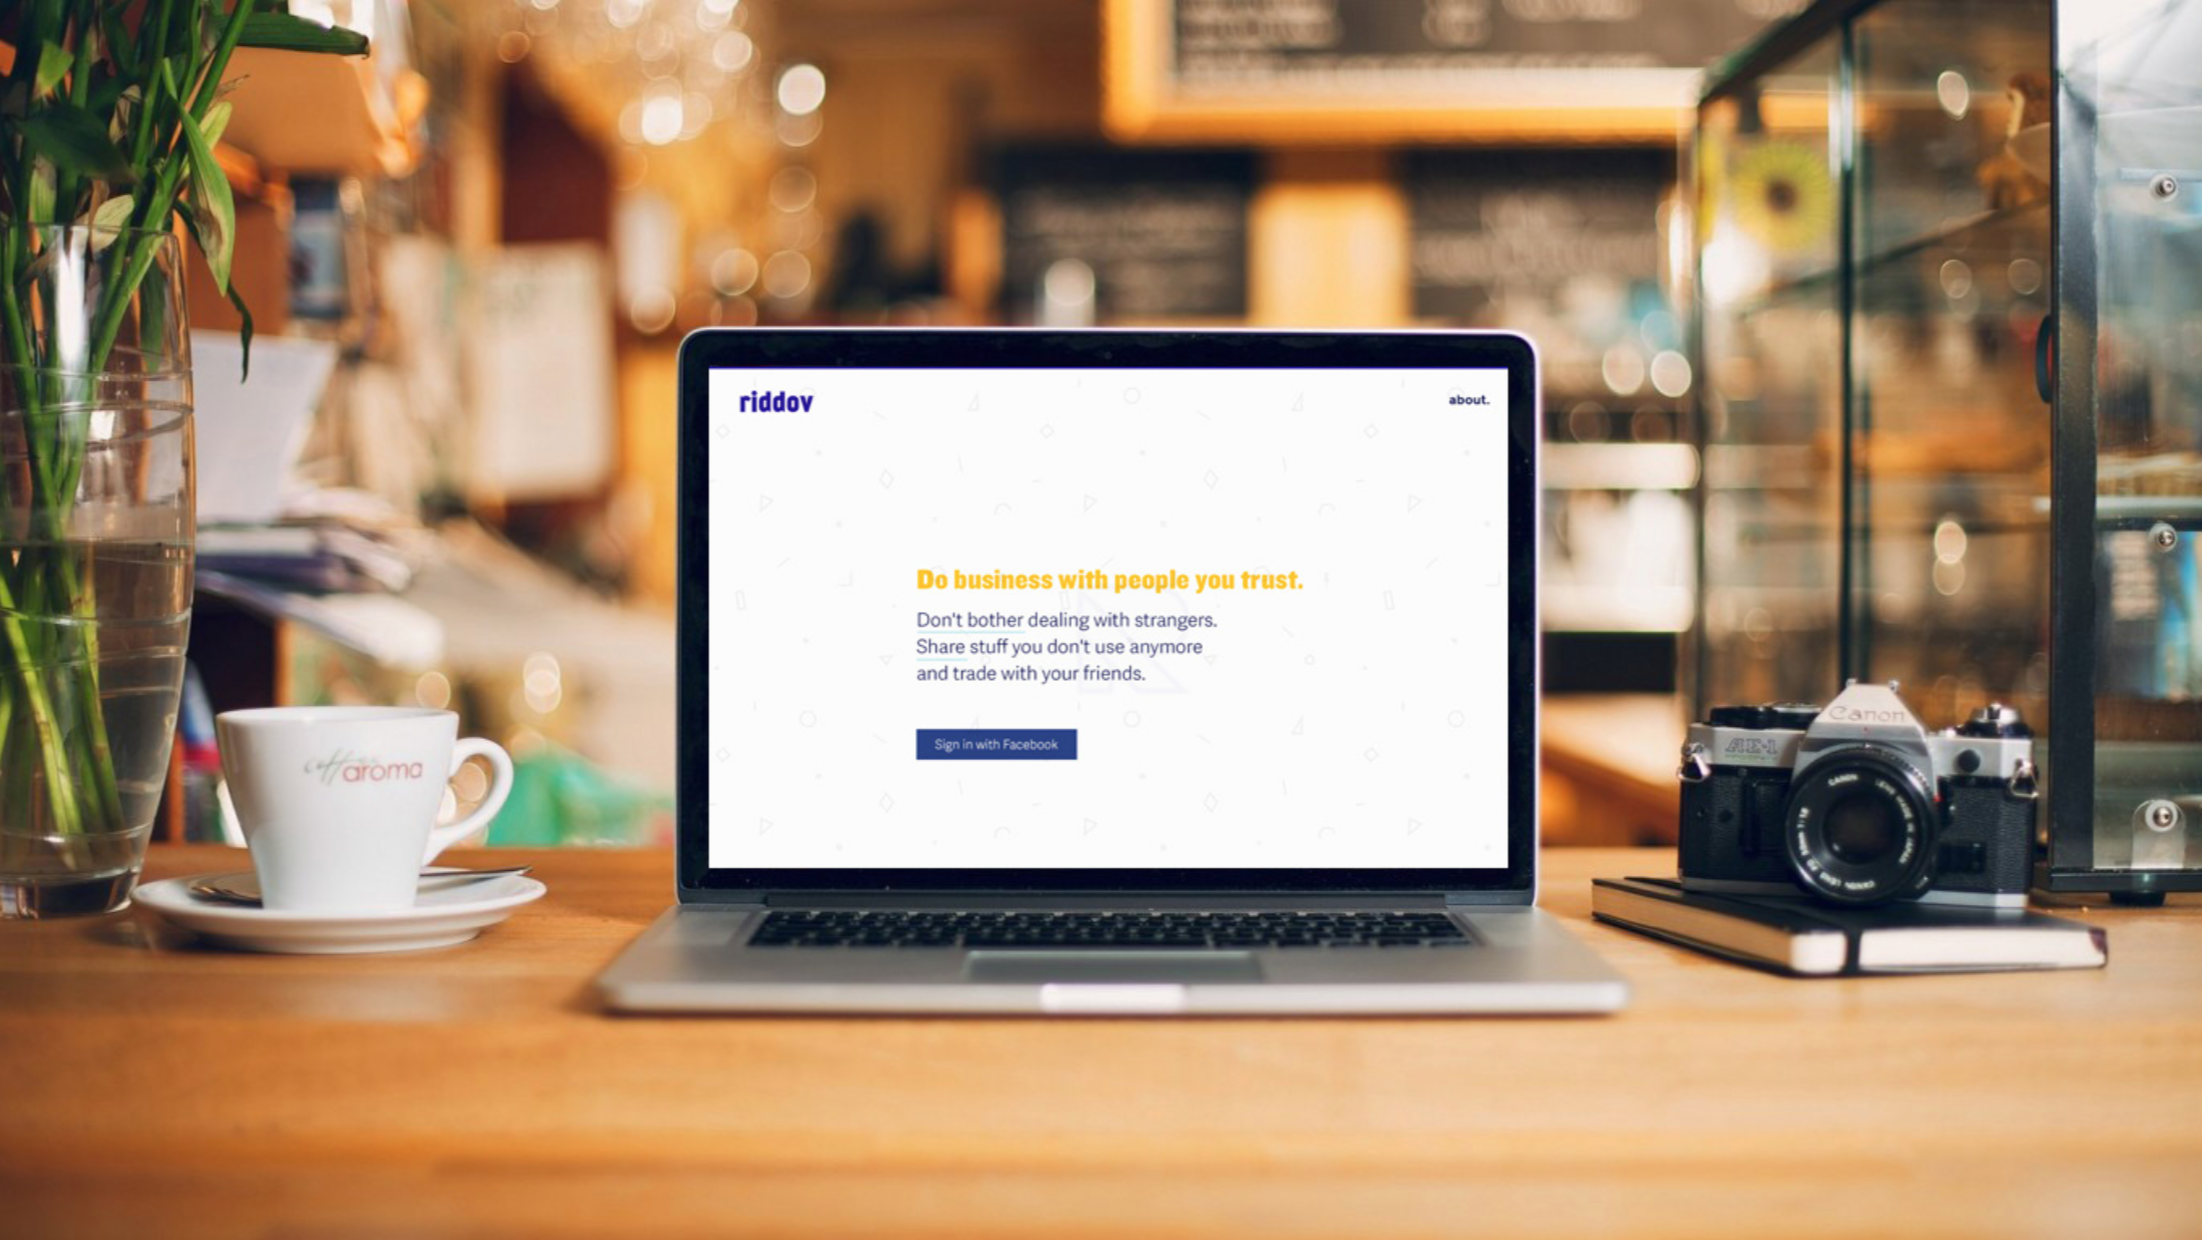 Riddov - Online platform to sell, buy and trade items between friends